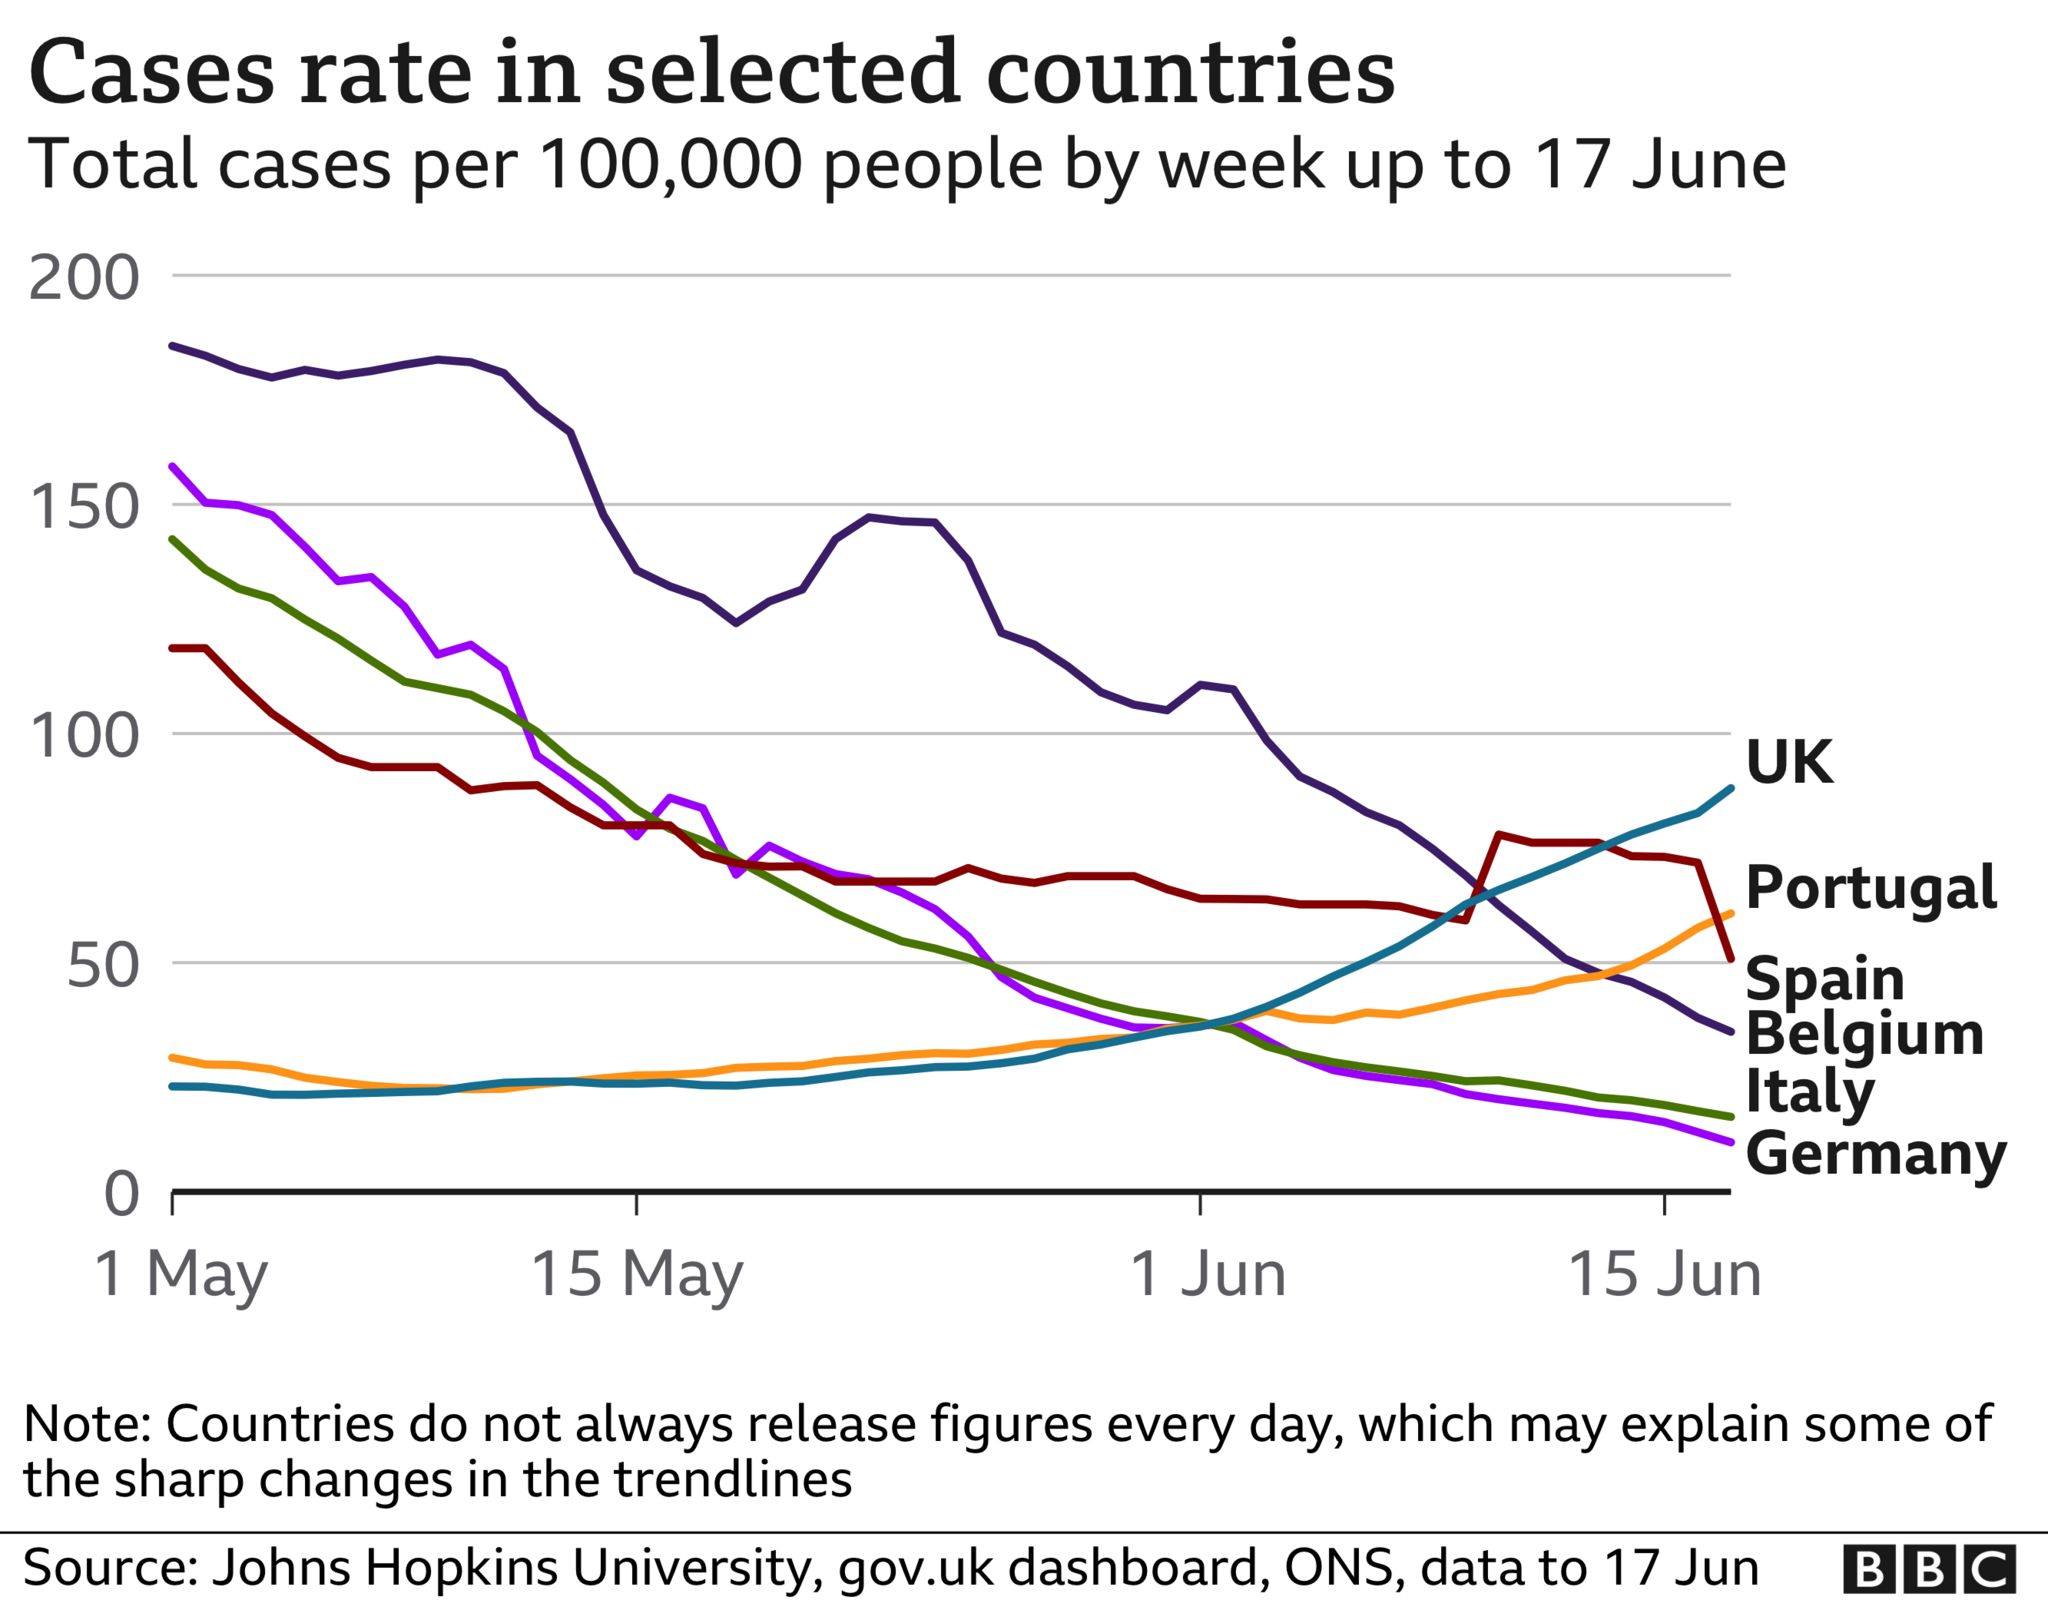 Chart showing number of cases in the UK, Portugal, Spain, Belgium, Italy and Germany